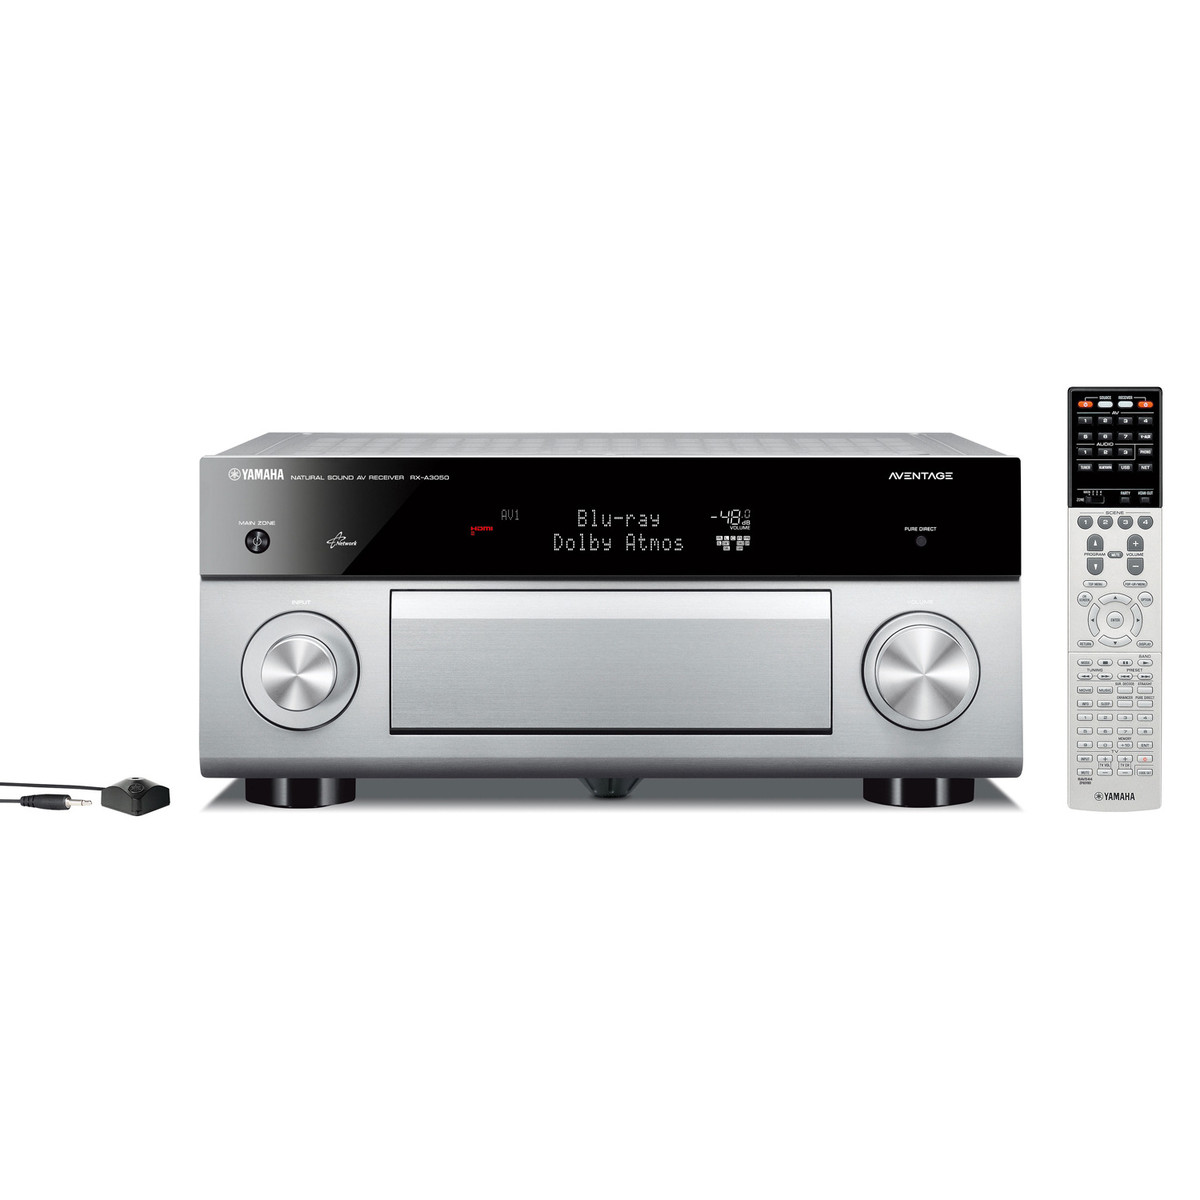 Disc yamaha rxa3050 aventage av receiver with musiccast for Yamaha multi zone receiver